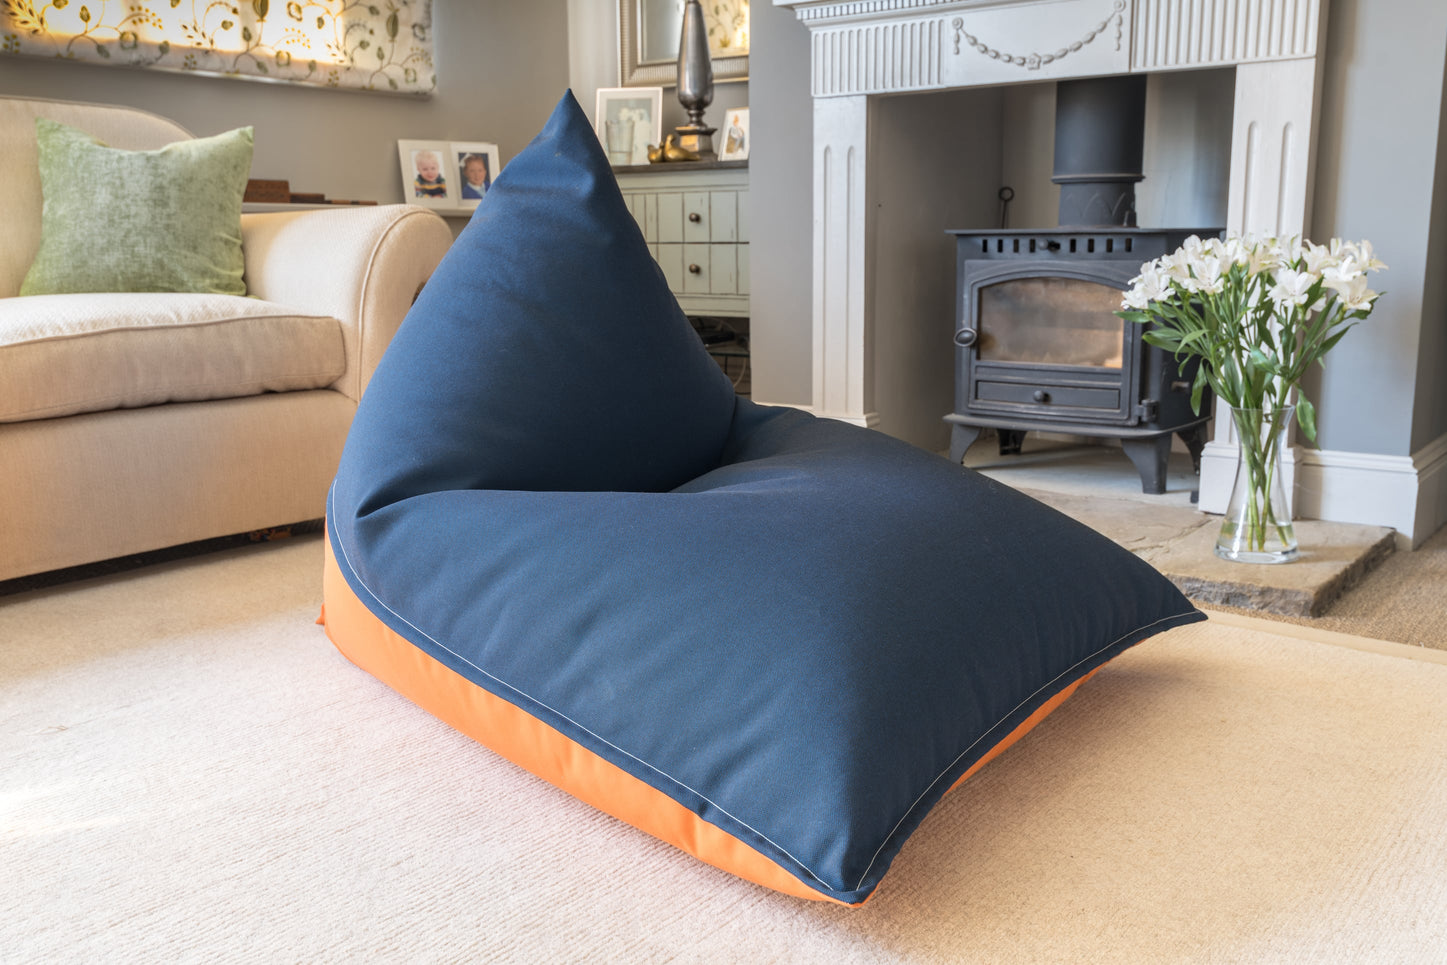 Armadillo Sun bean bag chair in orange and navy blue fabric indoors by fireplace